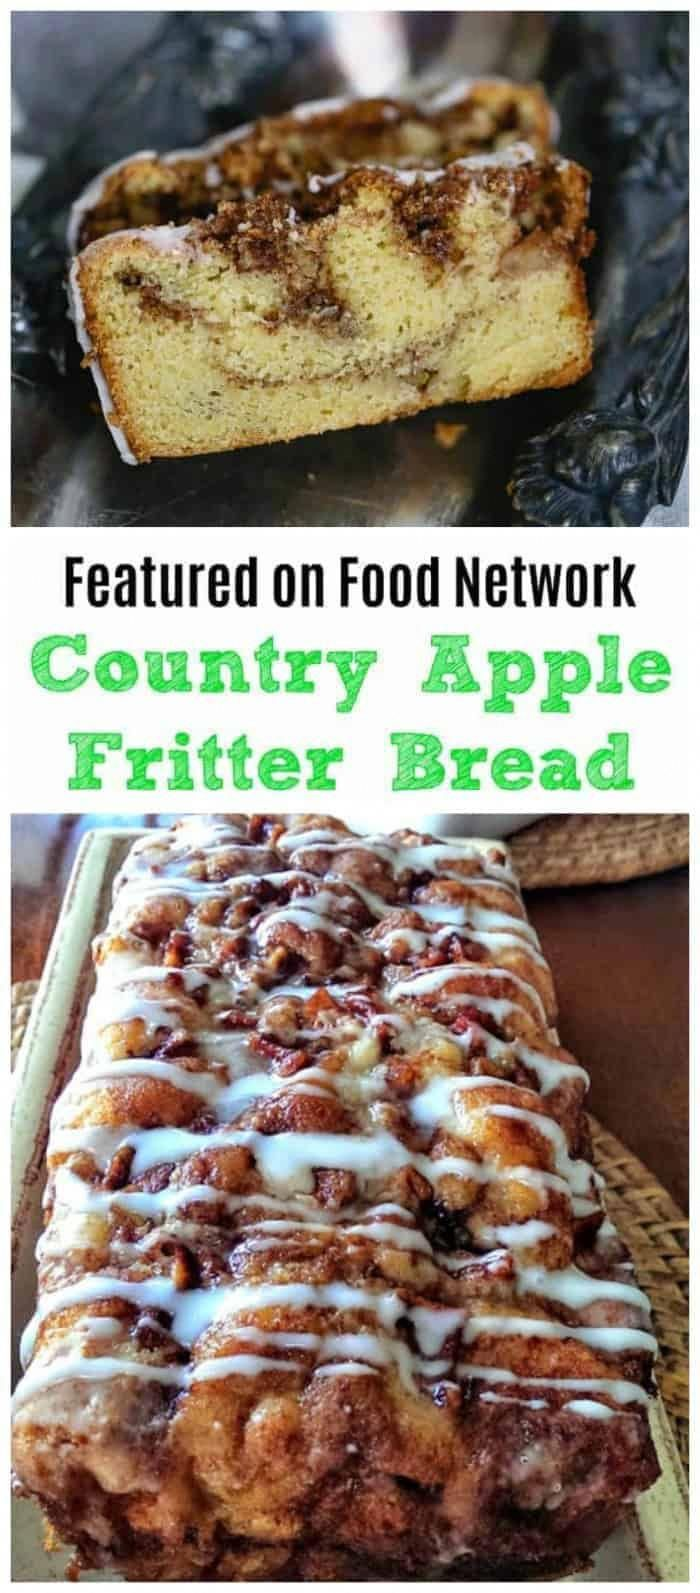 Awesome Country Apple Fritter Bread! Haveyou ever had an apple fritter transformedinto fluffy, buttery, white cake loaf with chunks of juicy apples and layers of brown sugar and cinnamon swirled inside and on top? Drizzle with some old-fashioned creme glaze and devour! It's so moist, so delicious and full of home-made goodness straight from yourheart, because why? Because YOUmade it!